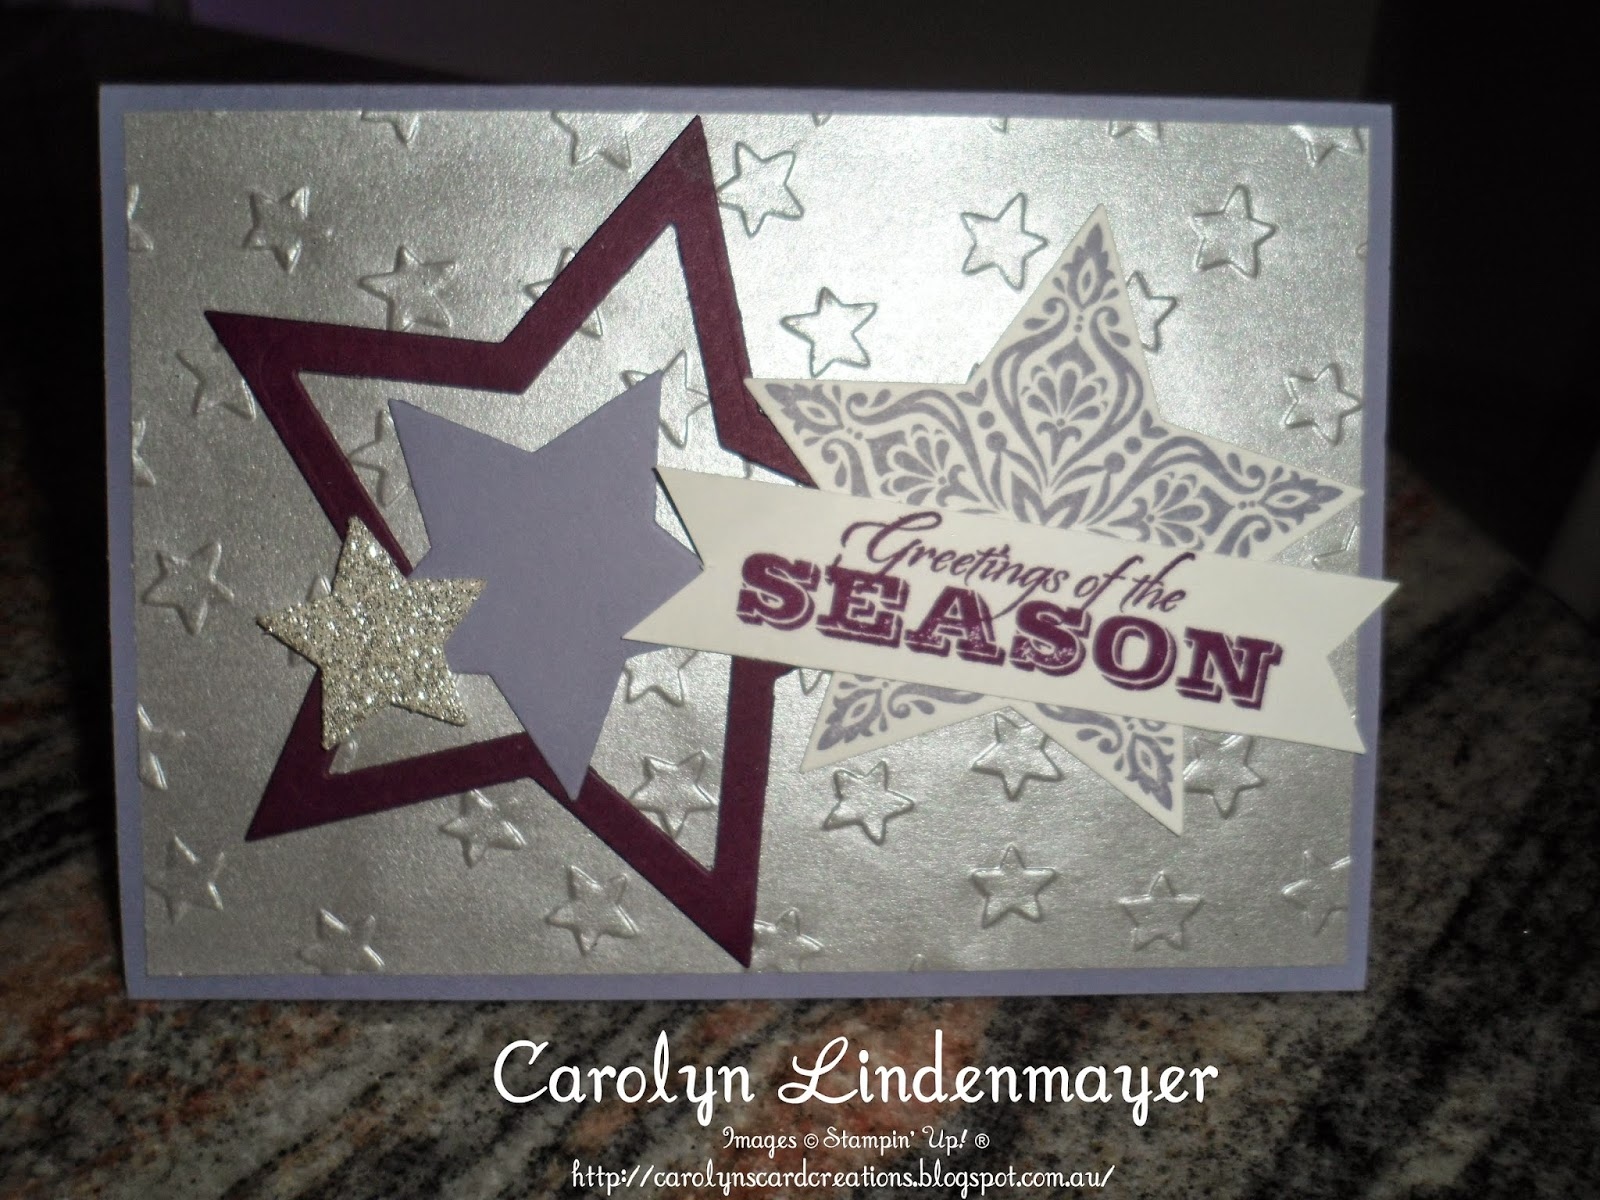 Greetings Of The Season Star Collage Card